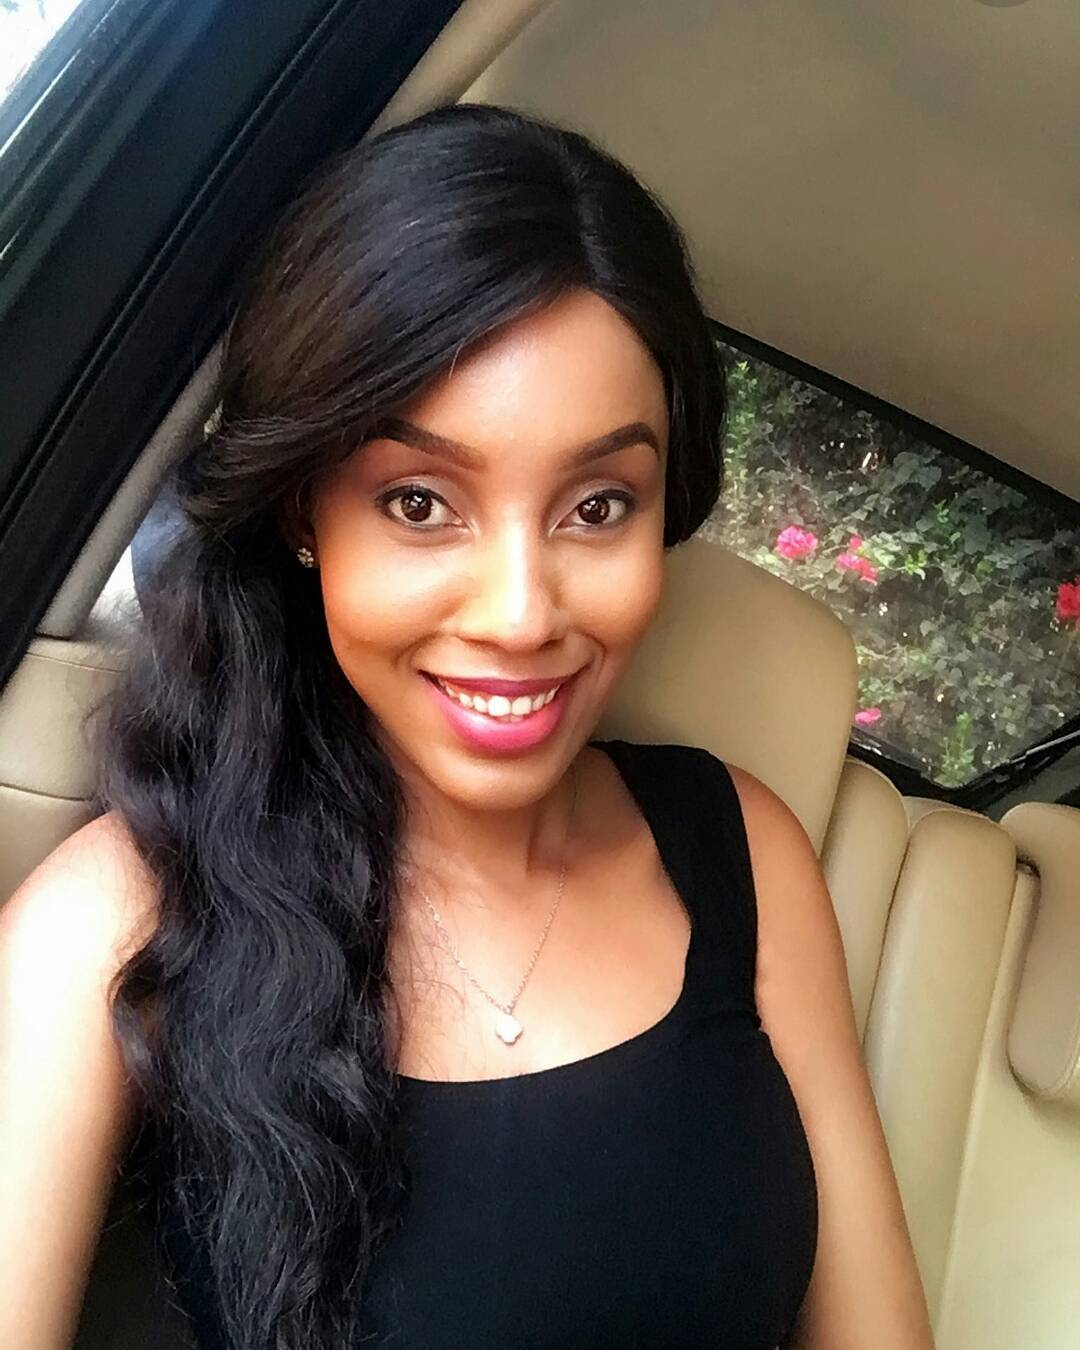 Photos of Doreen Gatwiri's rich husband being arrested for beating her now emerge